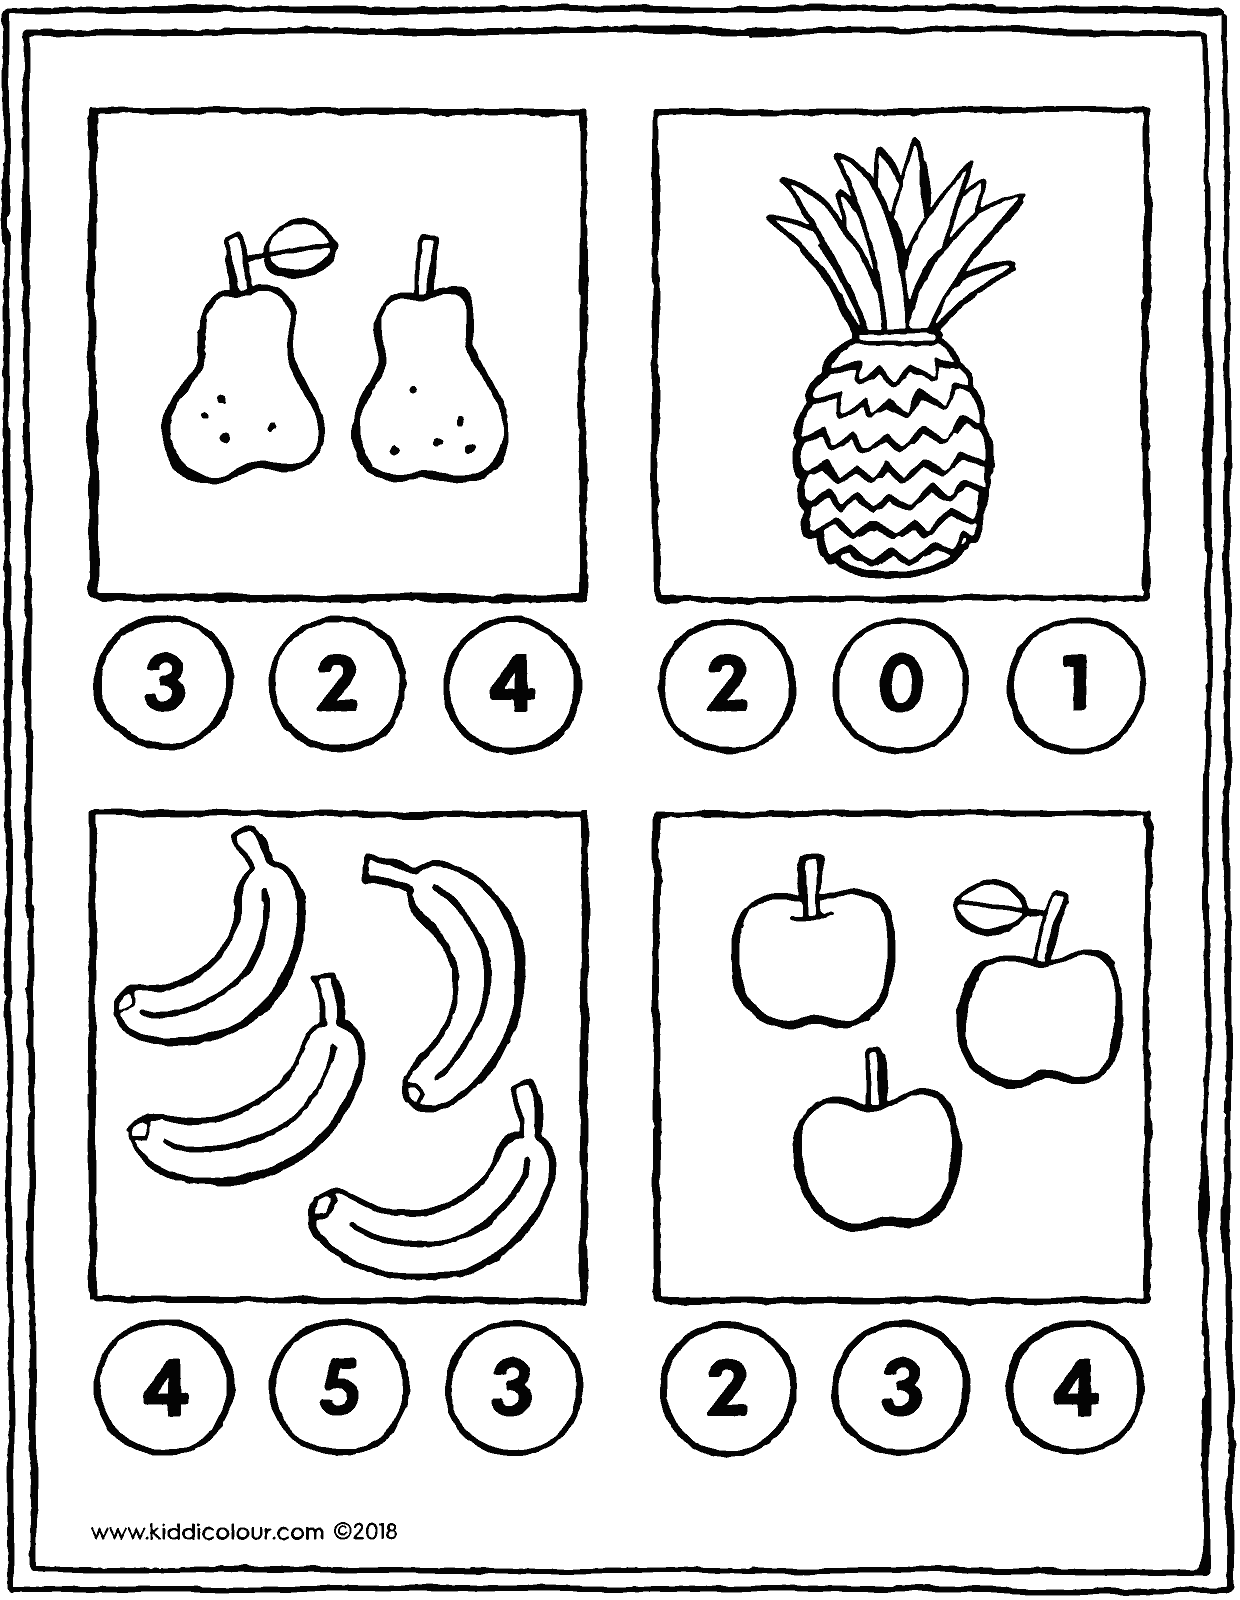 fruits colouring games cute fruits coloring play free coloring game online fruits games colouring